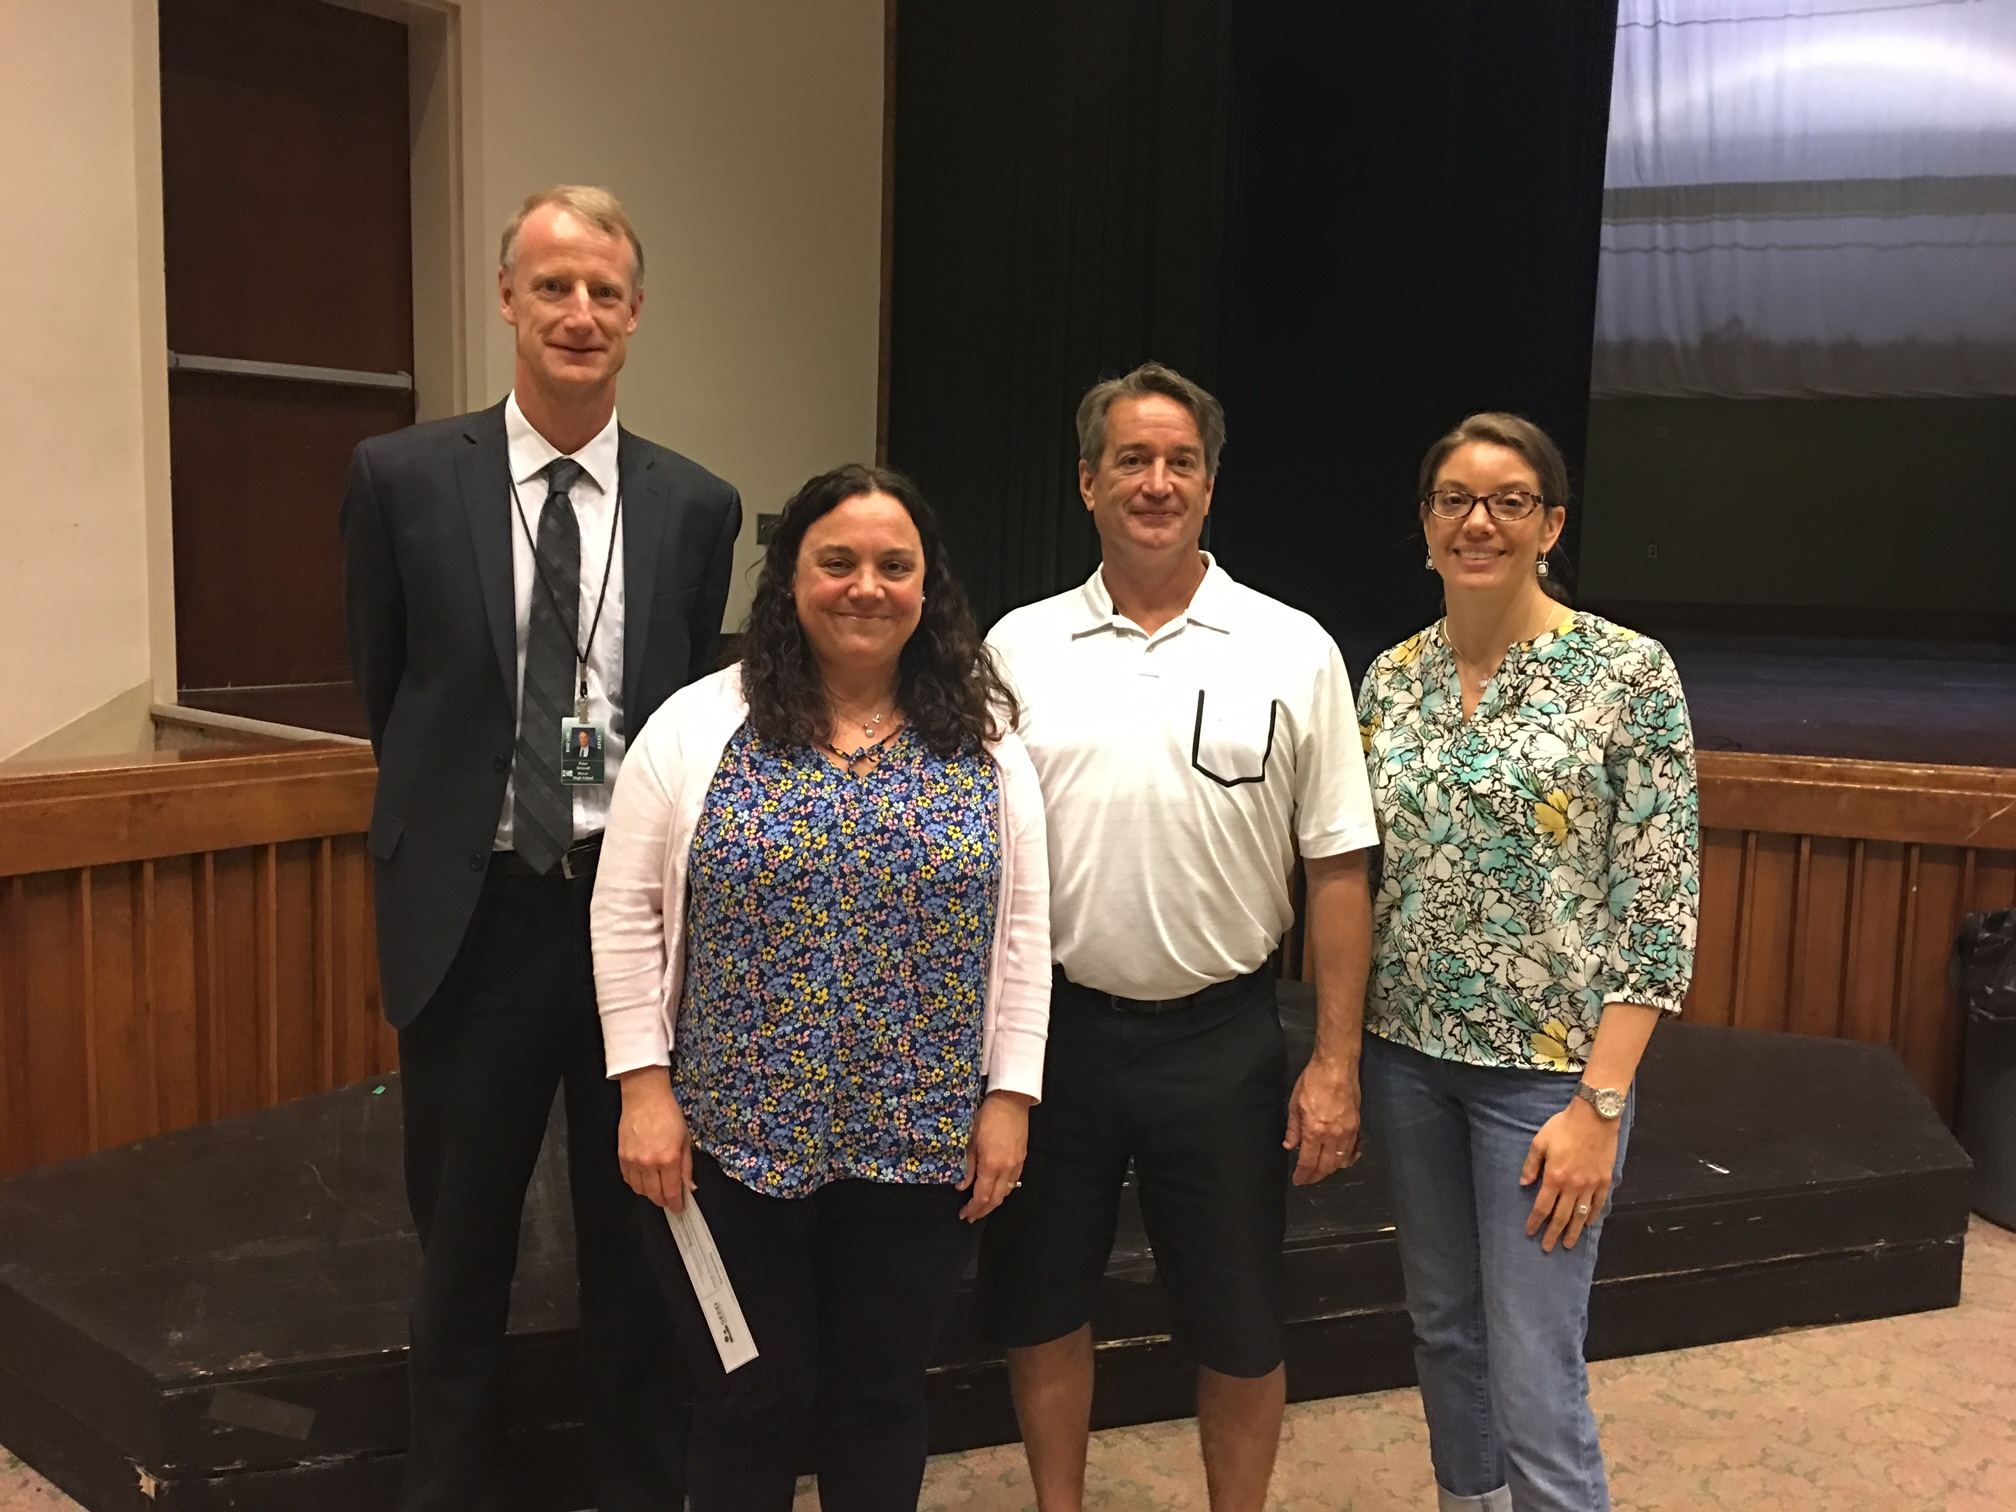 Left to right: Peter Driscoll and Tara Ouimette, with SEED board members Pat Duffy and Kelly Glennon